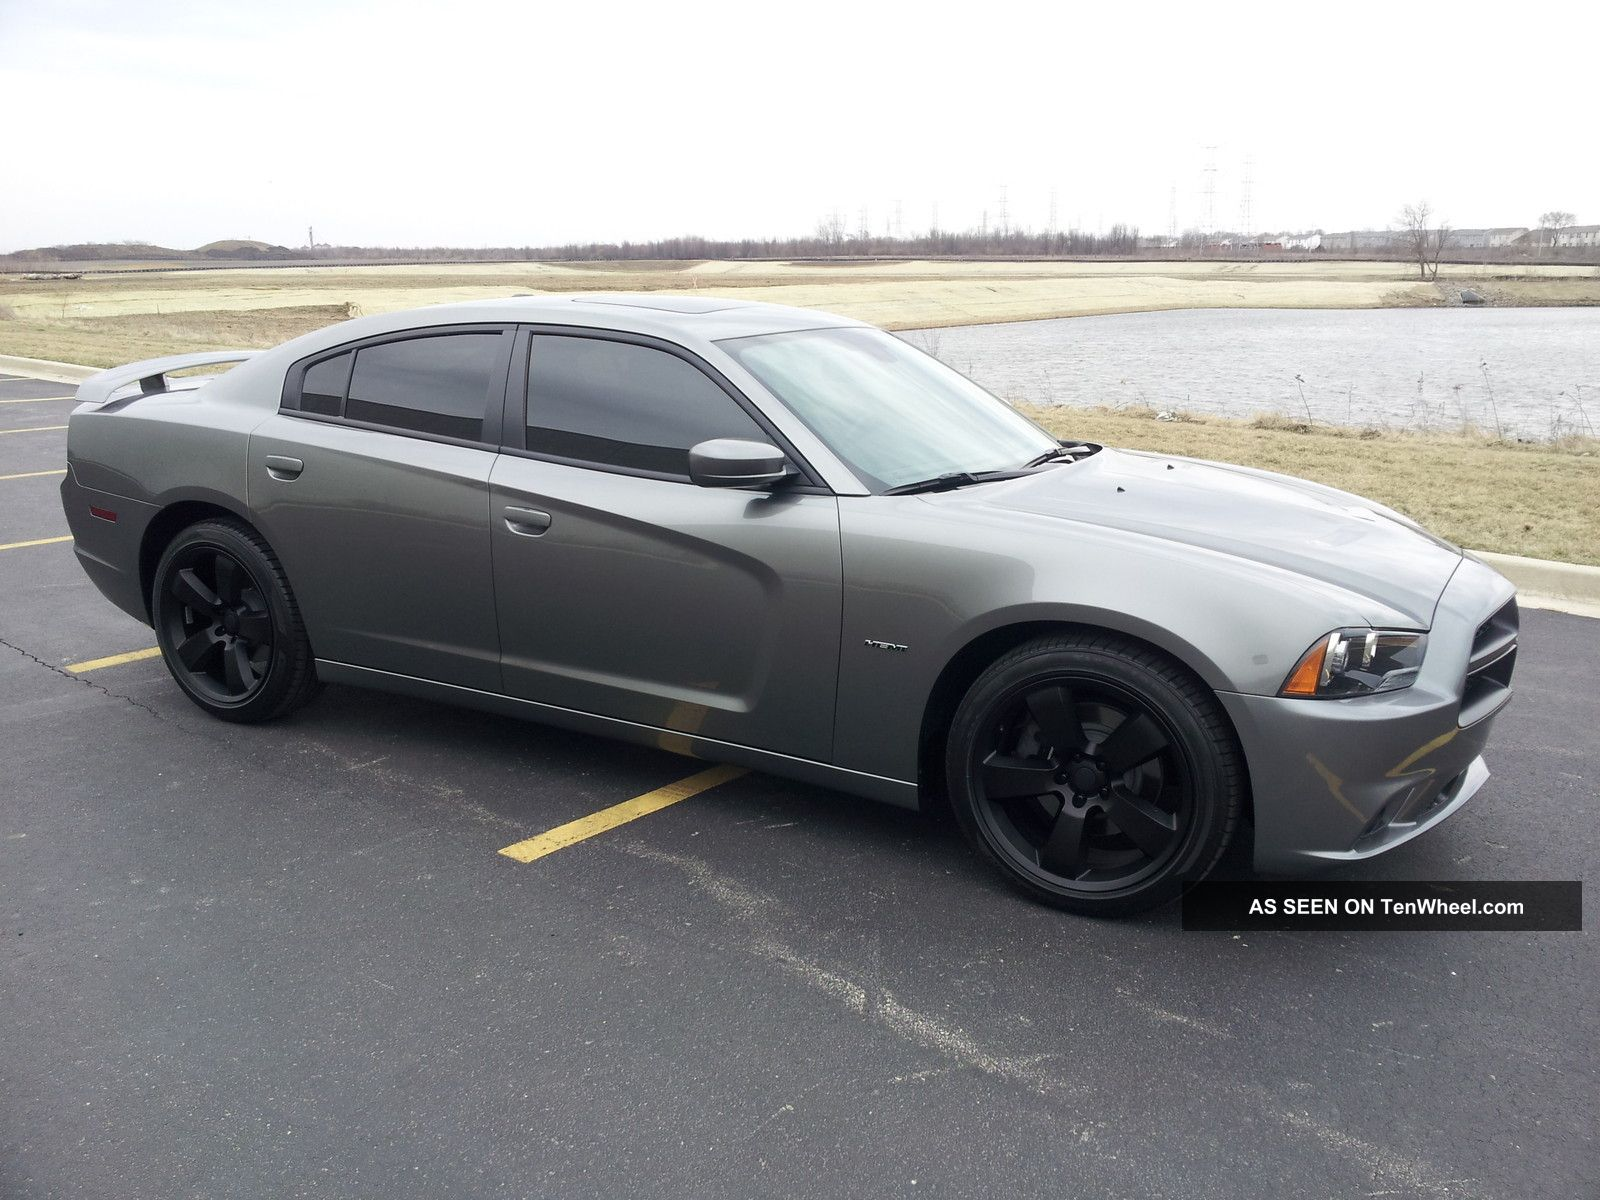 2013 dodge charger rt max specs 2018 dodge reviews. Black Bedroom Furniture Sets. Home Design Ideas